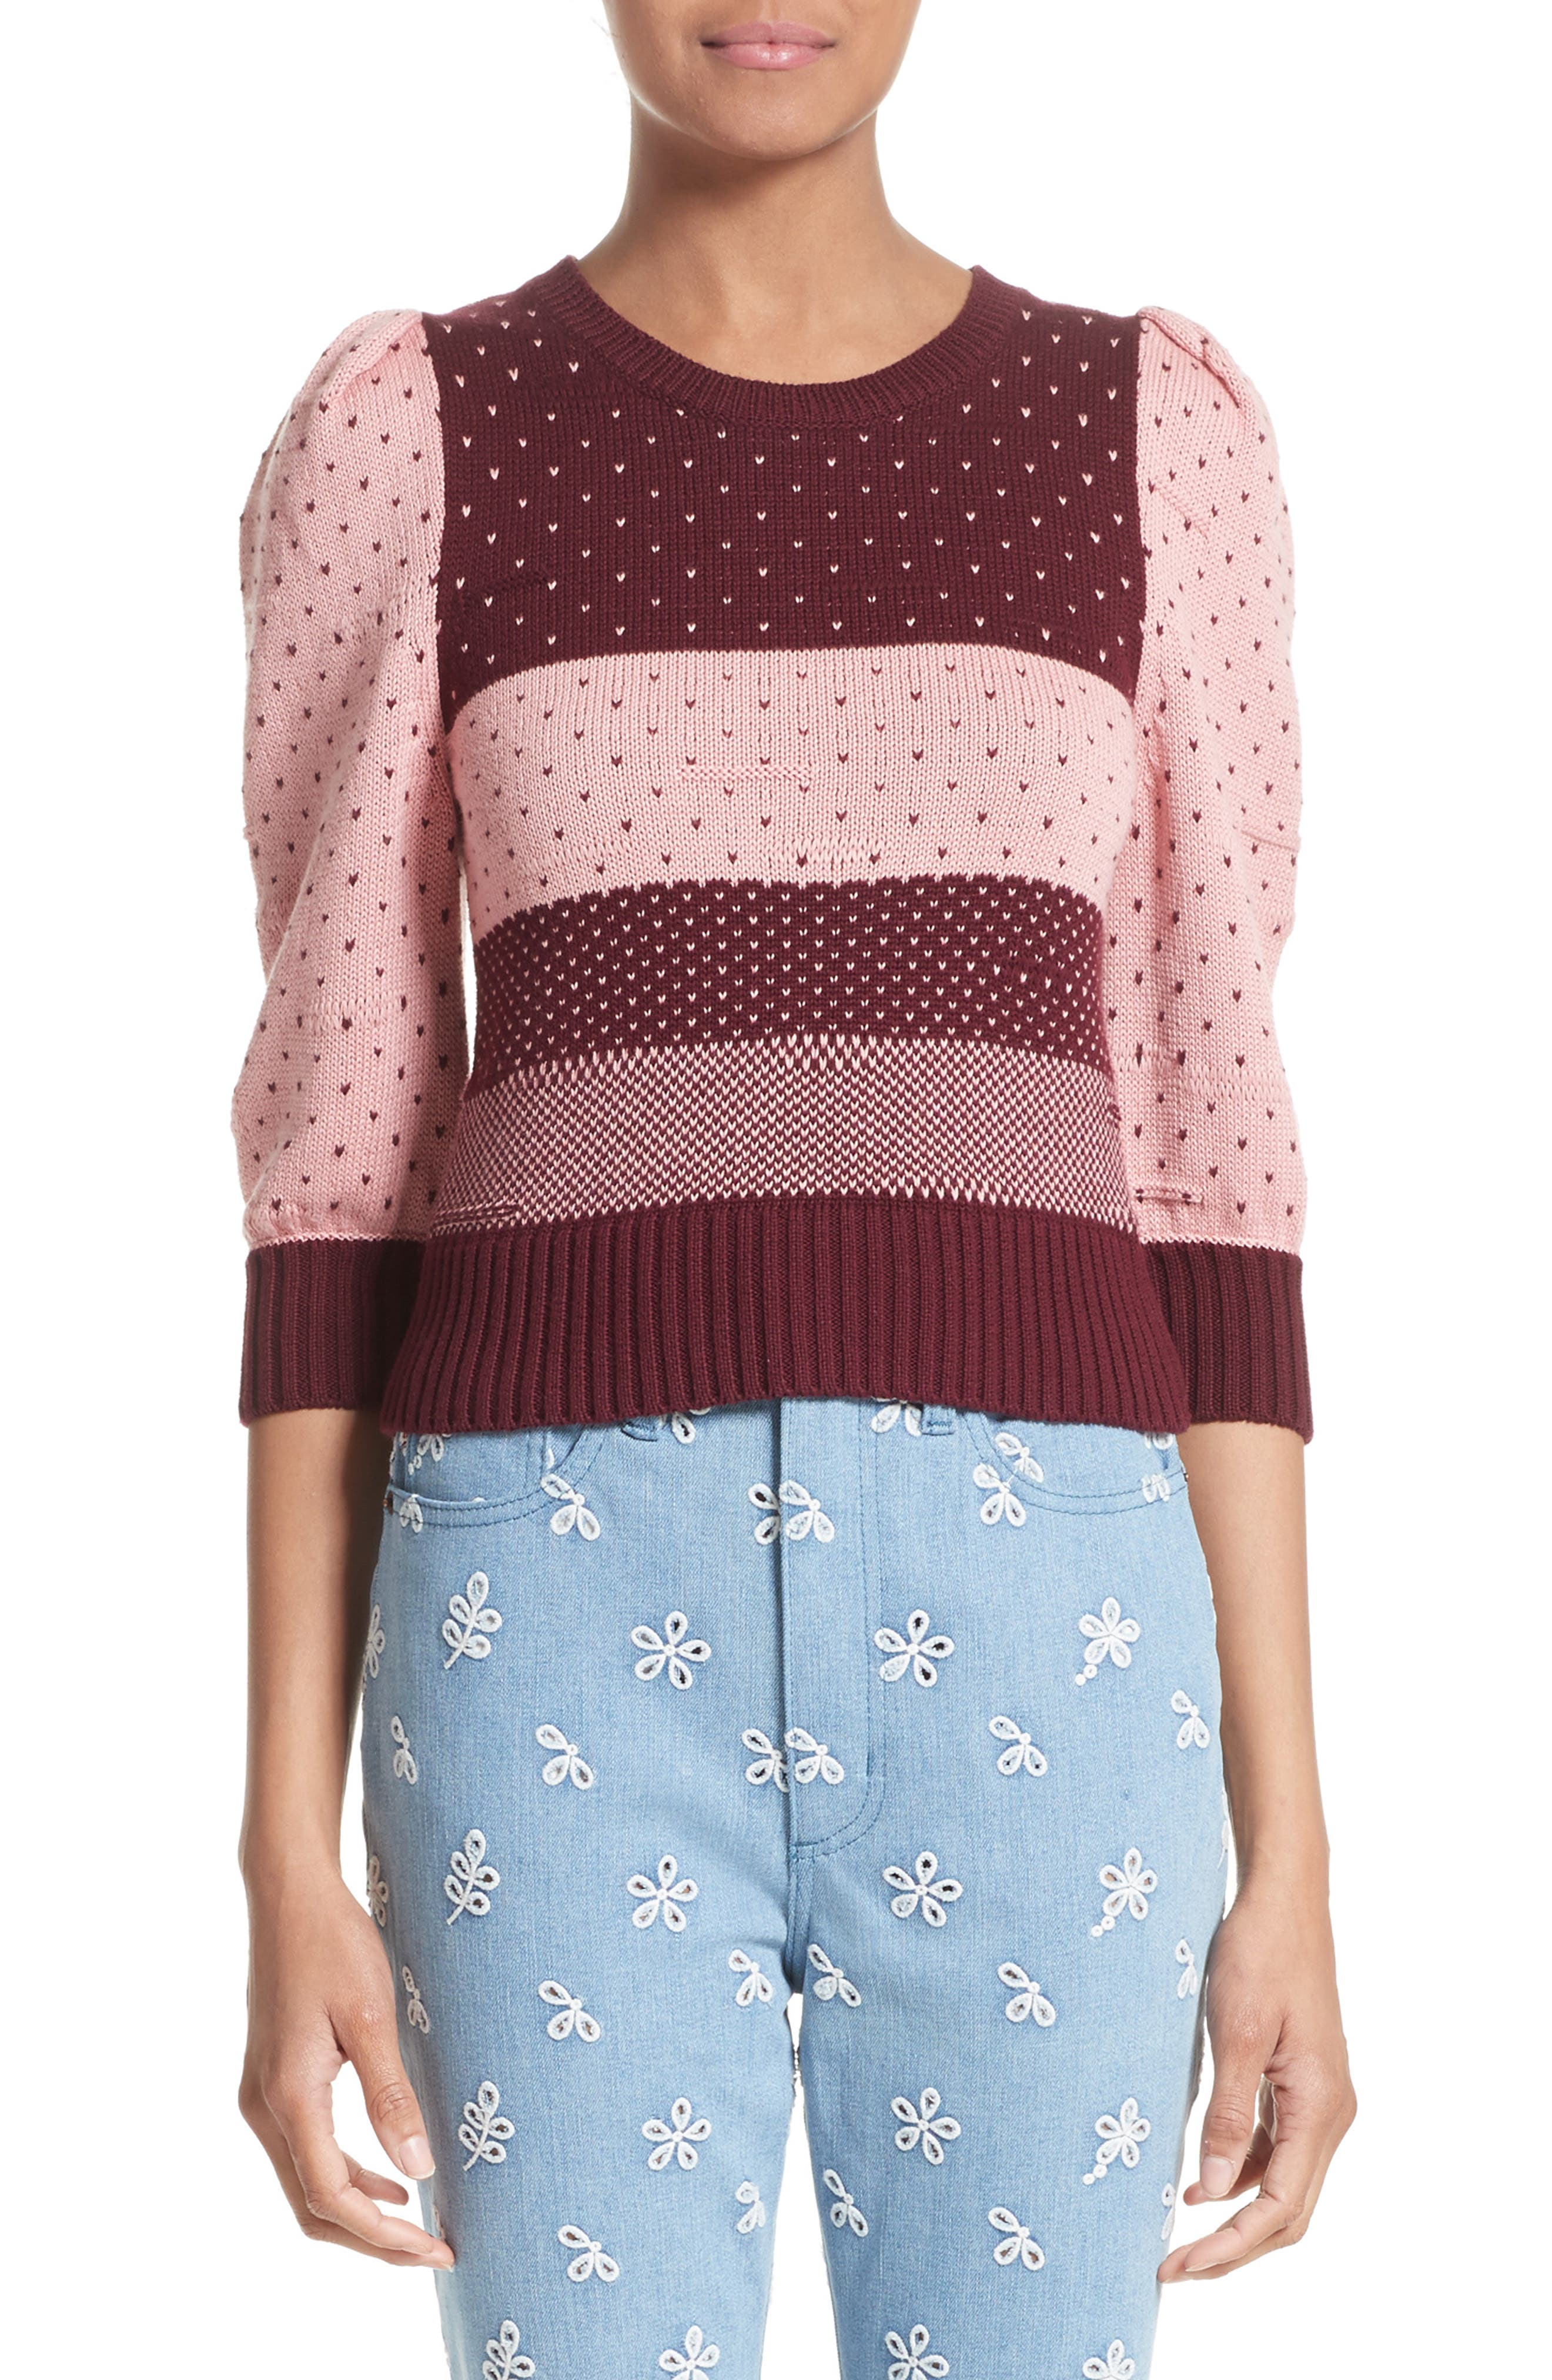 Cotton Jacquard Sweater,                         Main,                         color, Pink Multi